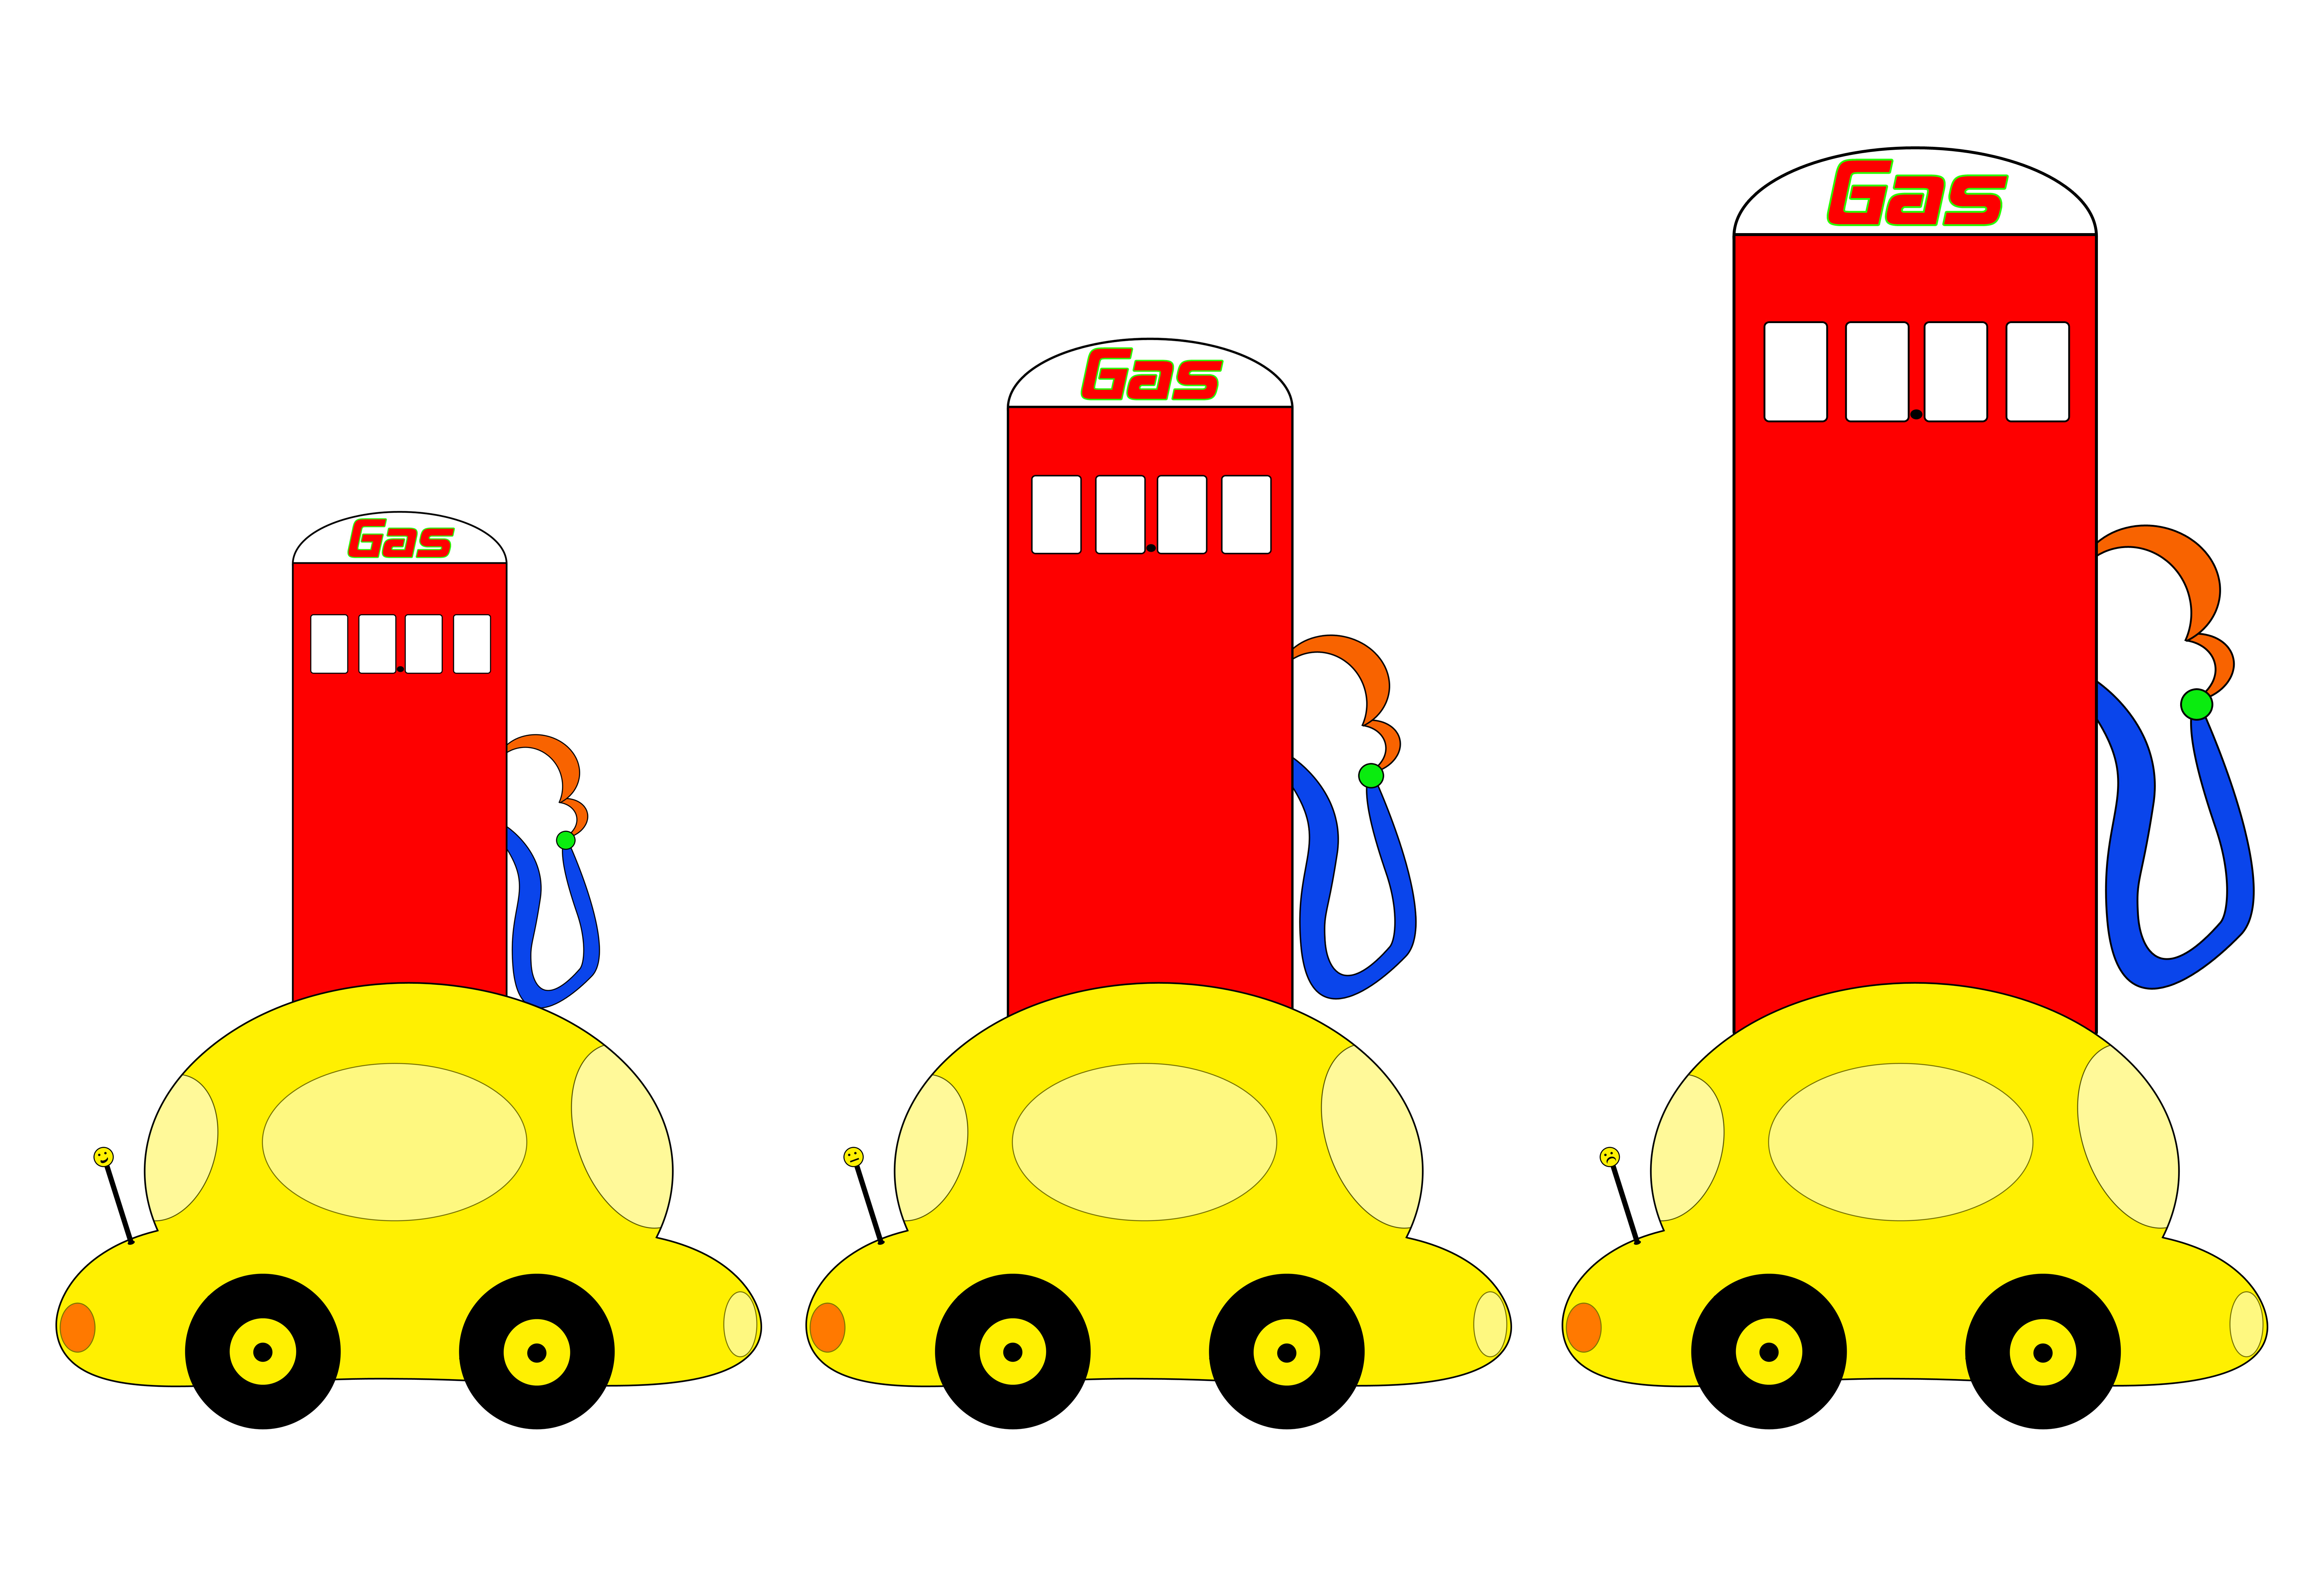 Bright and colorful cartoon cars in front of gas pumps that keep increasing in size.  Spaces where the prices would be are left blank.  Antenna decoration is smiling then progresses to a frown at the largest gas pump.